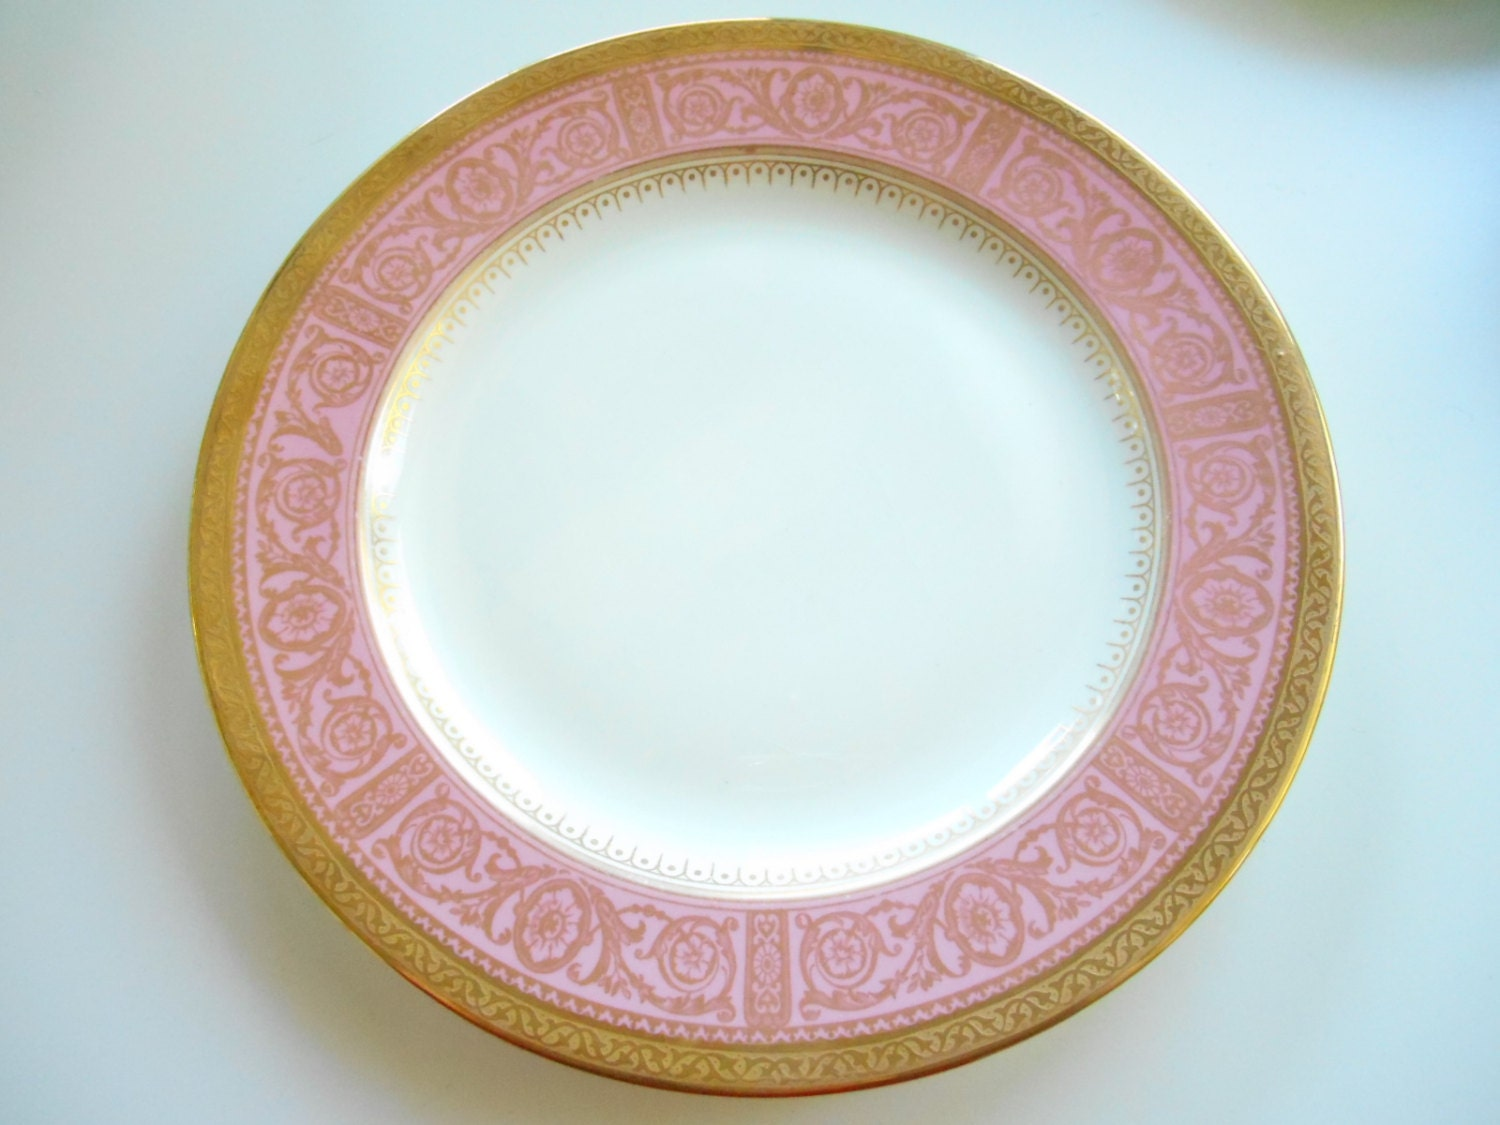 ... goth wedding ste&unk wedding Thanksgiving plates thanksgiving dishes dish skull dinnerware entomology dinnerware insect plates insect dishes & Pink and Gold Wedgwood Dinner Plate 11\